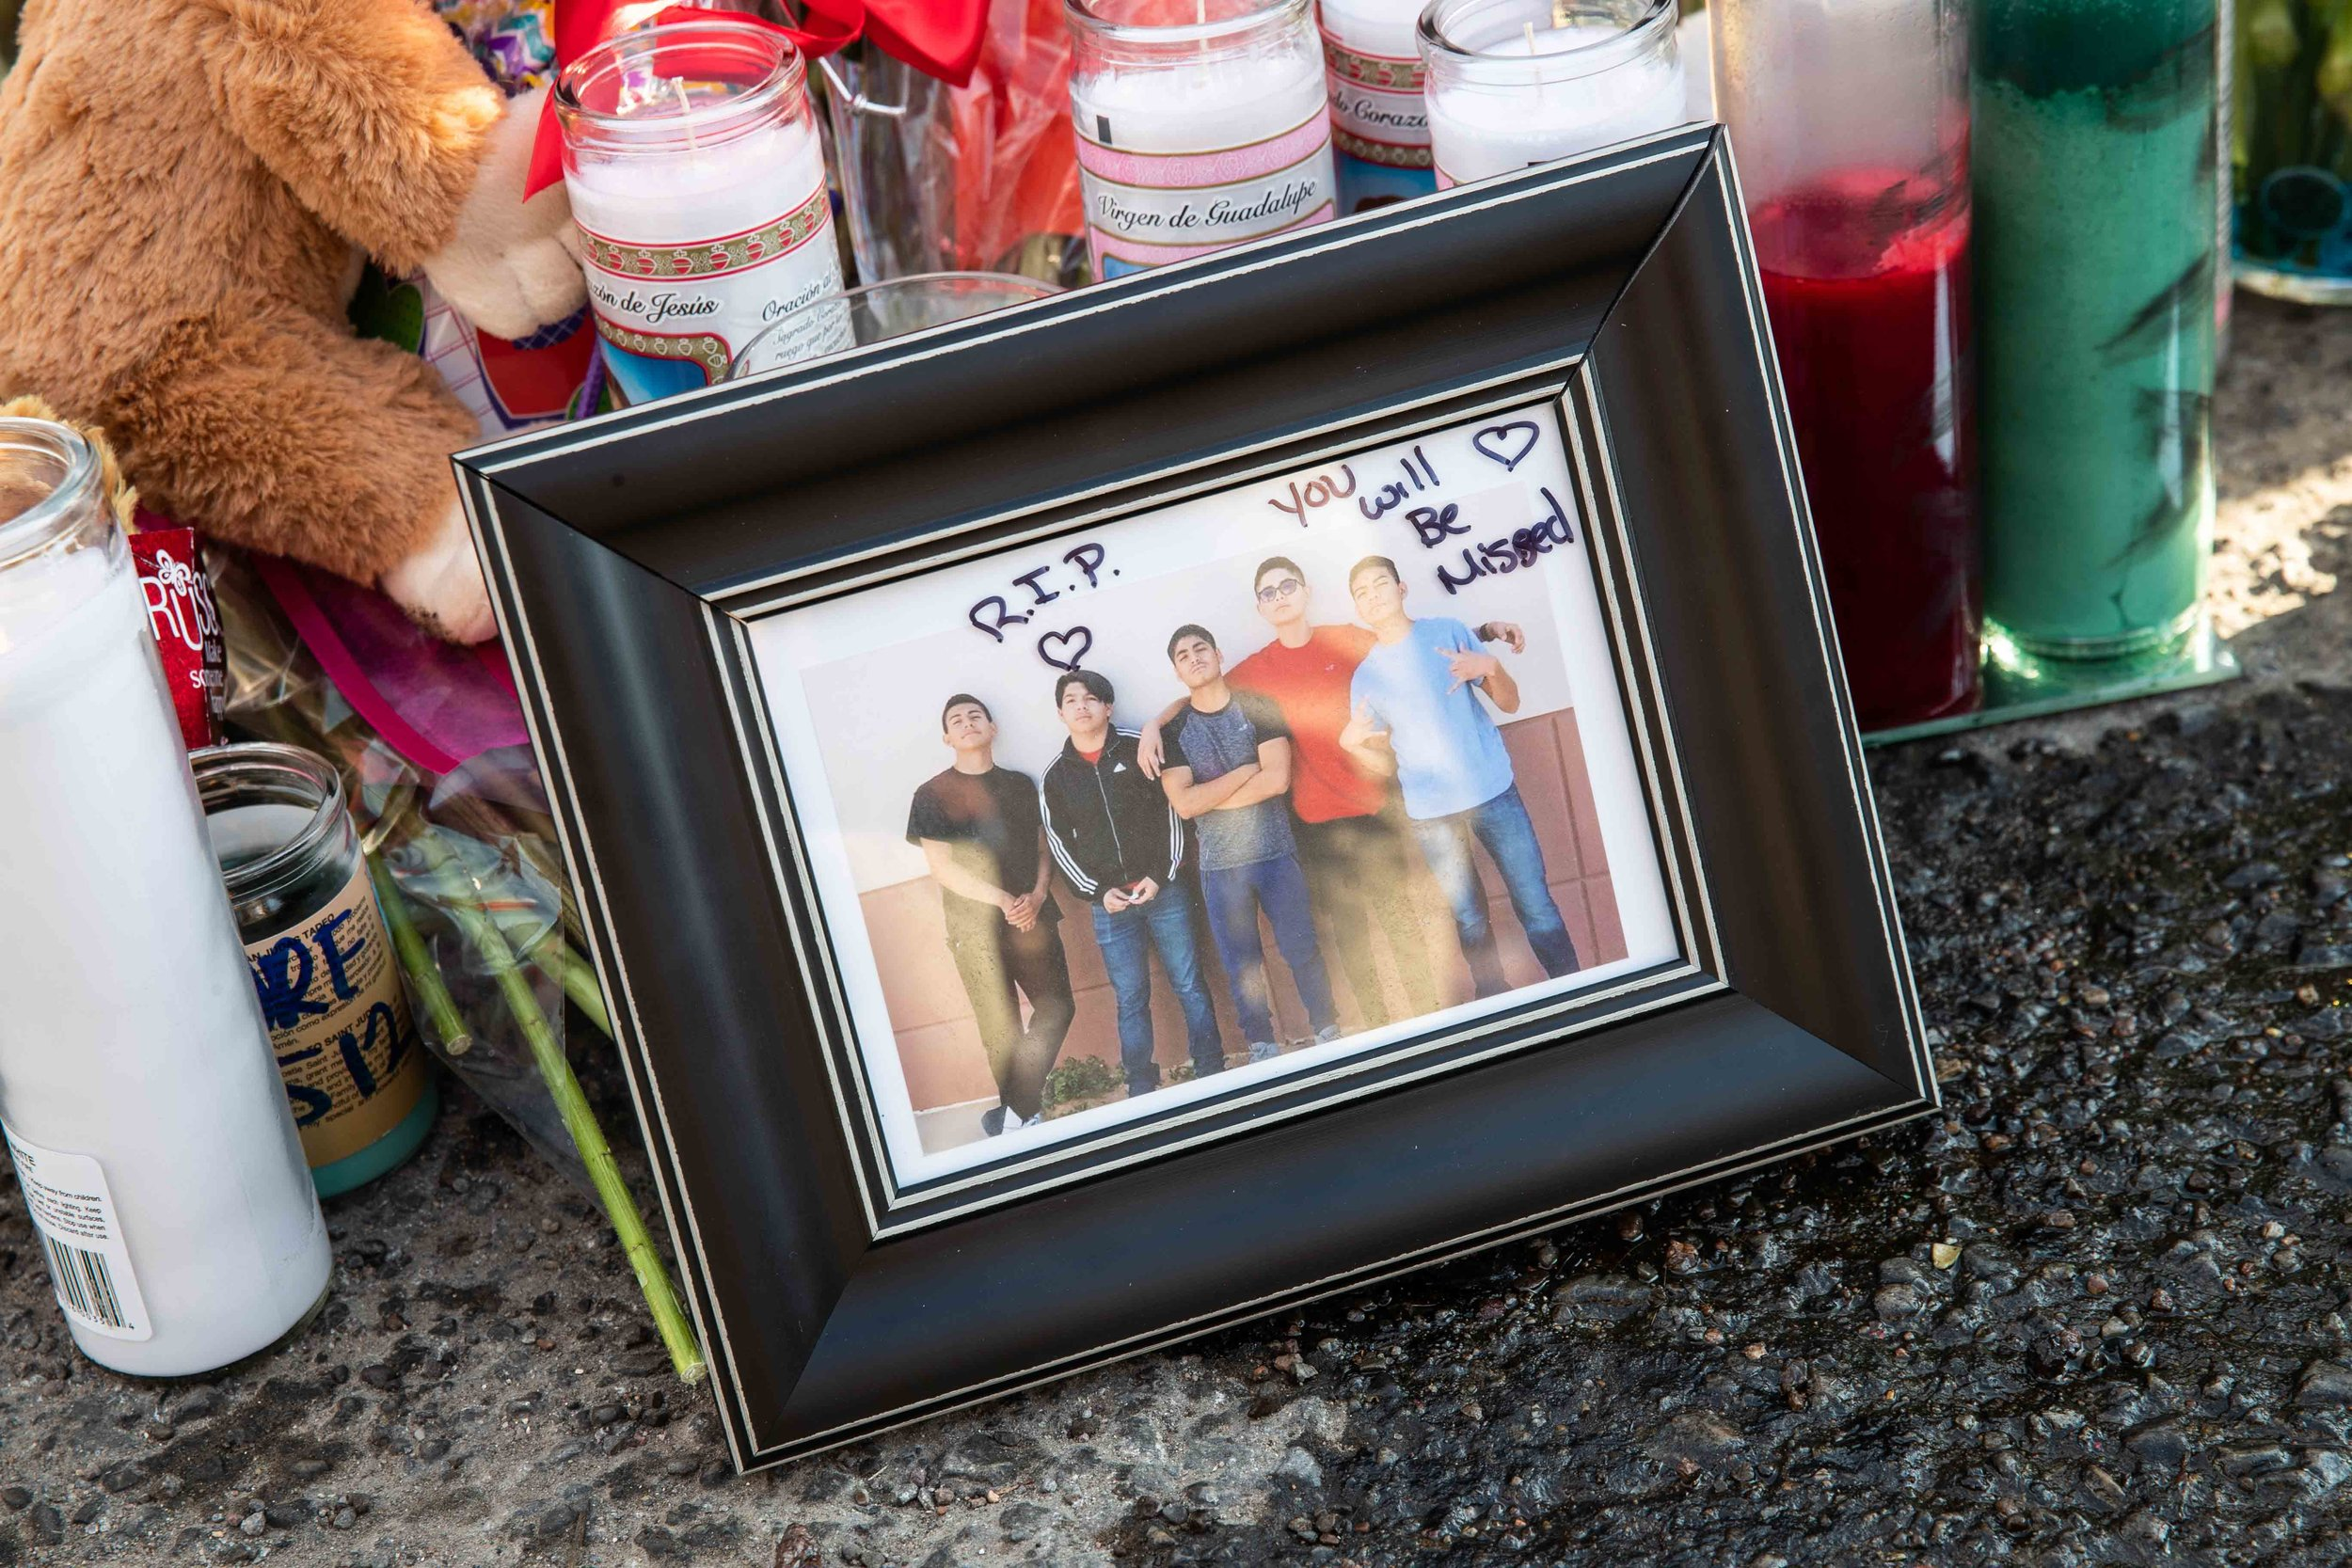 A photo of Javier Rodriguez posing with his friends is placed on the scene to honor his memory in El Paso on Monday, August 5, 2019.